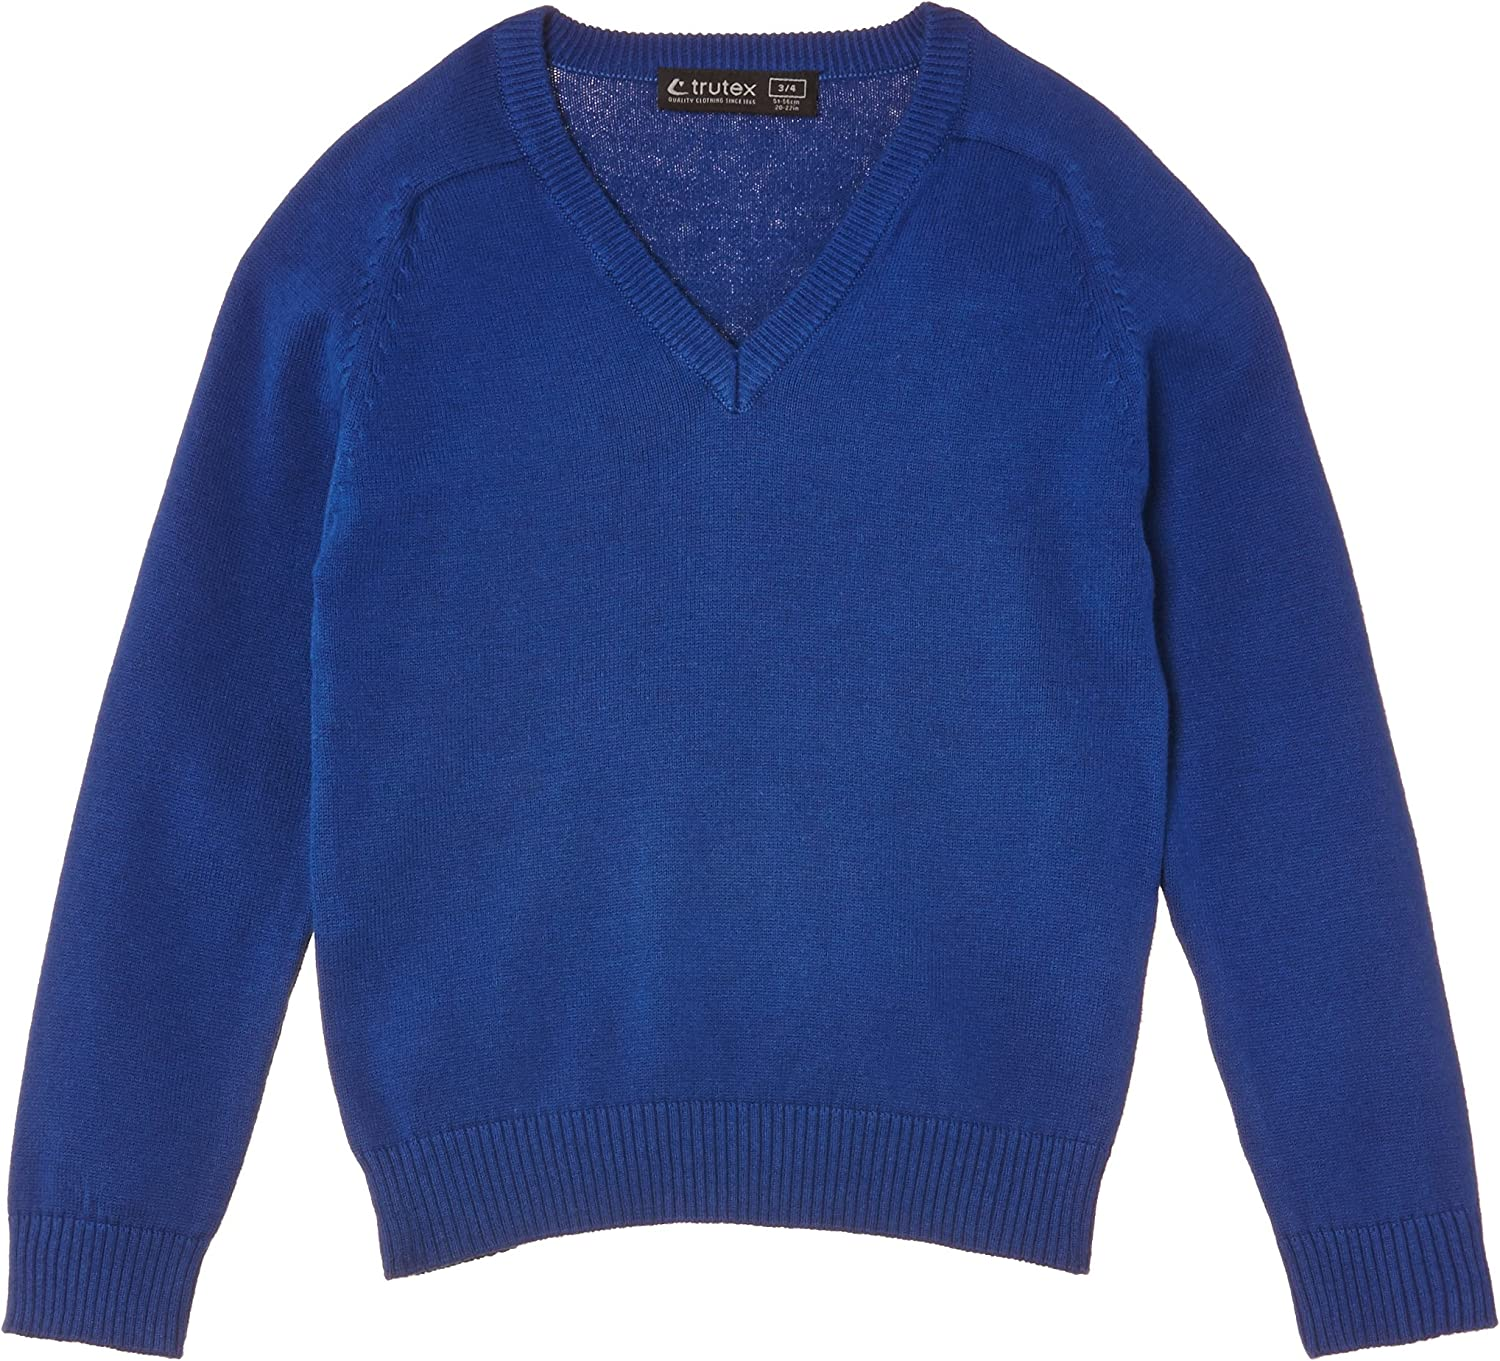 14 Years Manufacturer Size: Medium Royal Trutex Girls Cotton V Neck Jumper